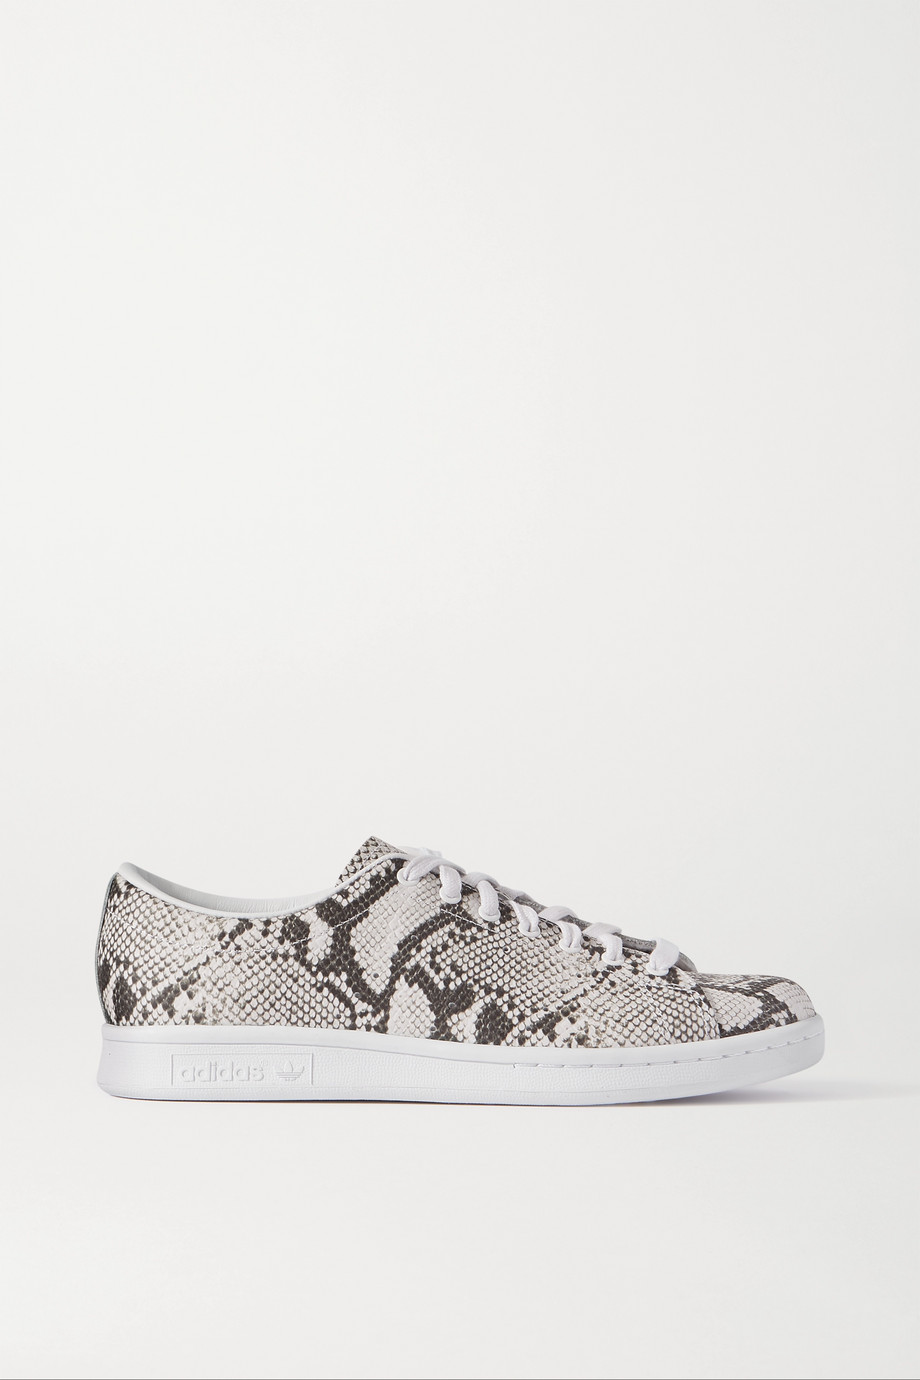 adidas Originals + Hyke AOH-001 snake-effect leather sneakers